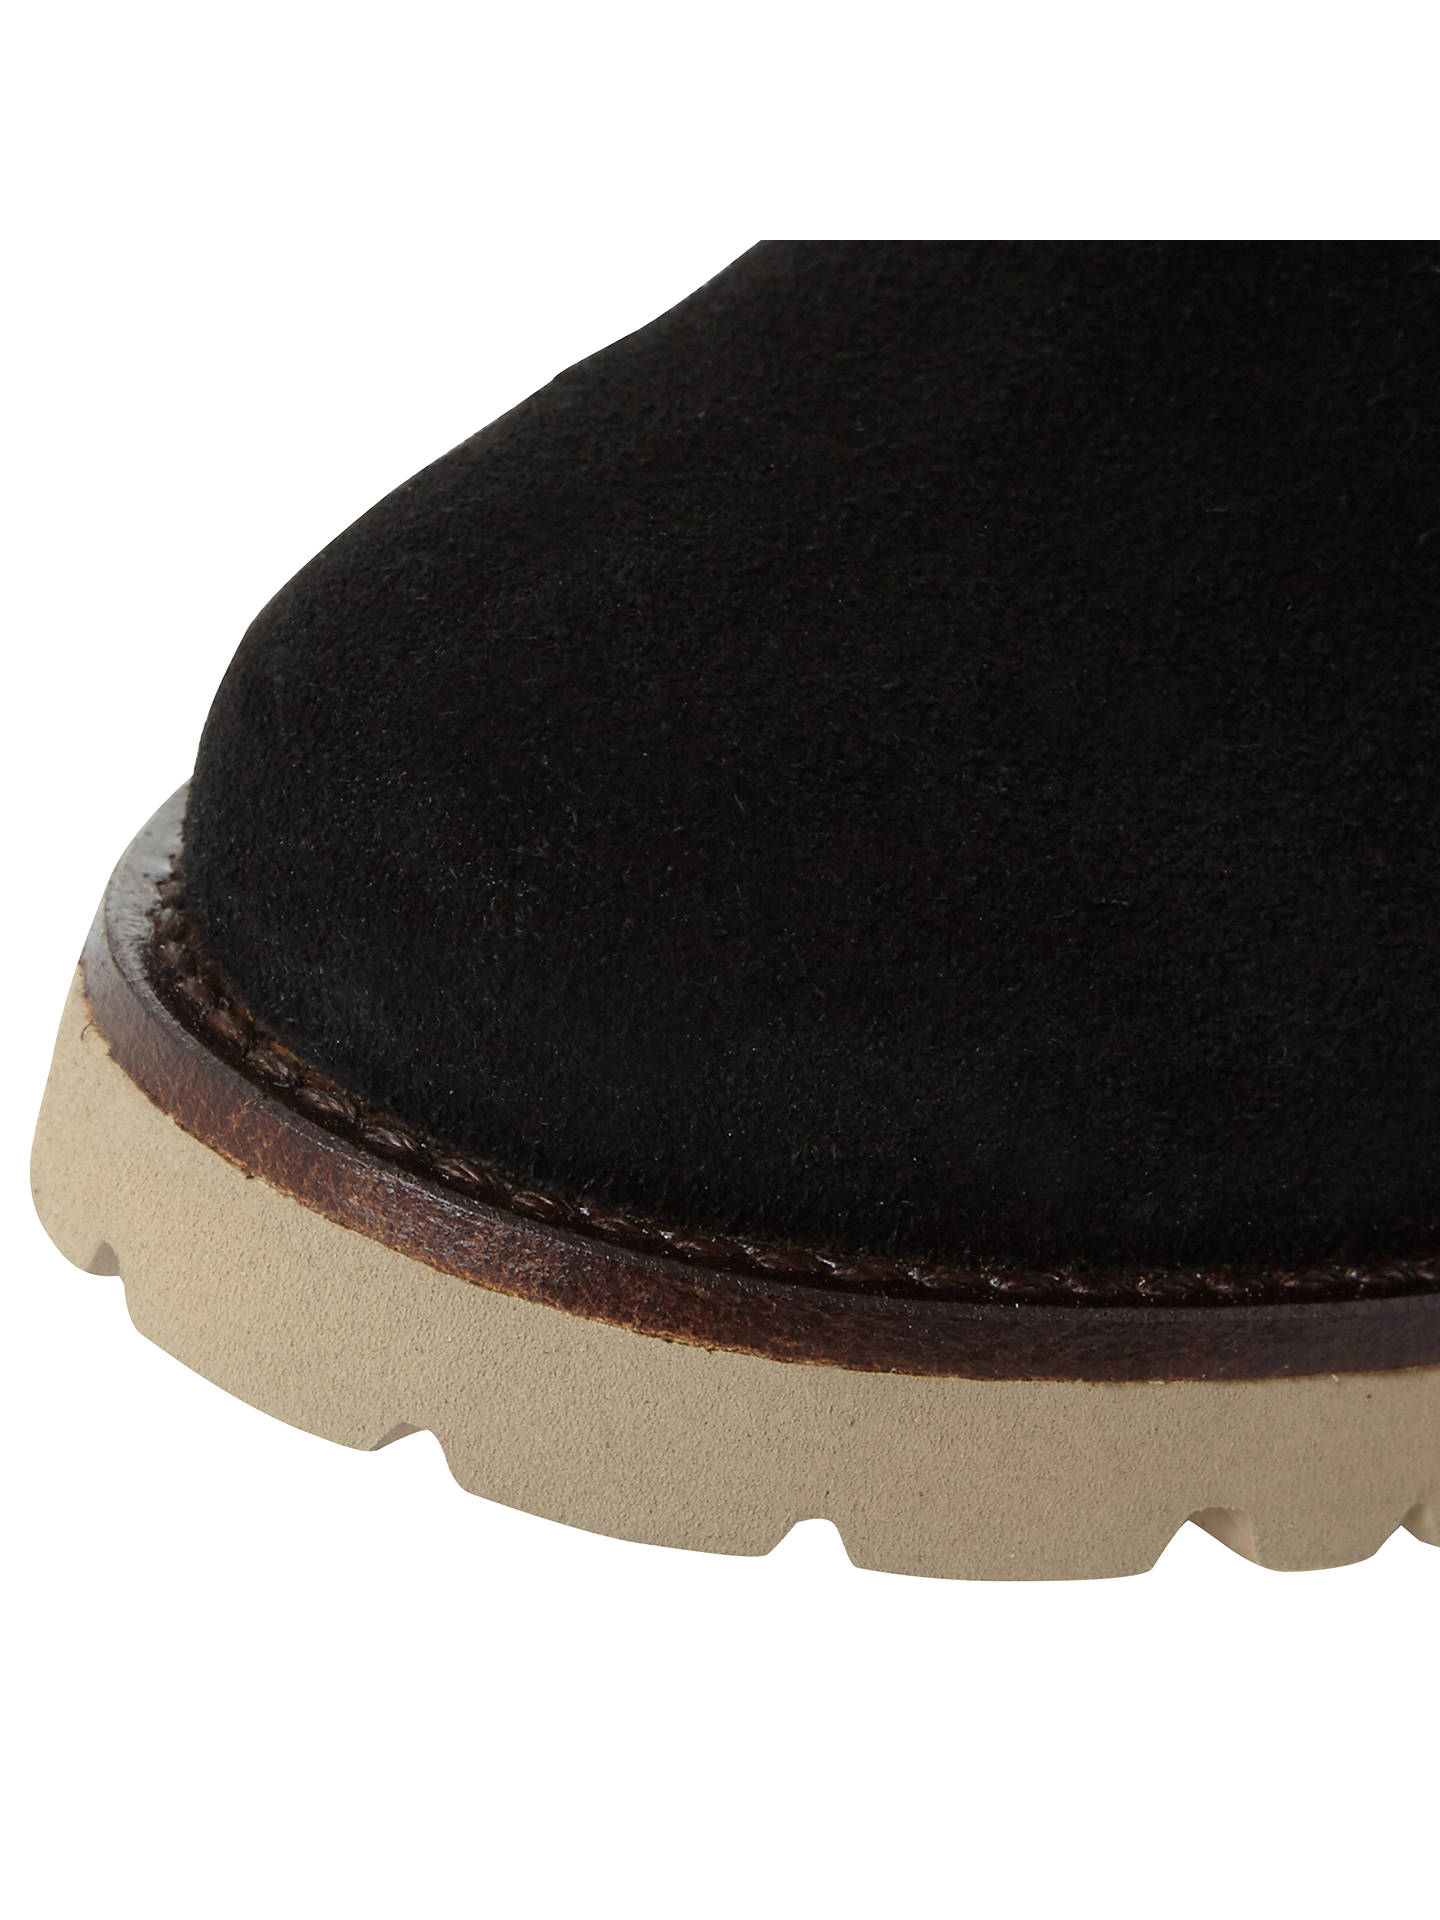 Buy Steve Madden Driller Faux Fur Cuff Ankle Boots, Black Suede, 3 Online at johnlewis.com